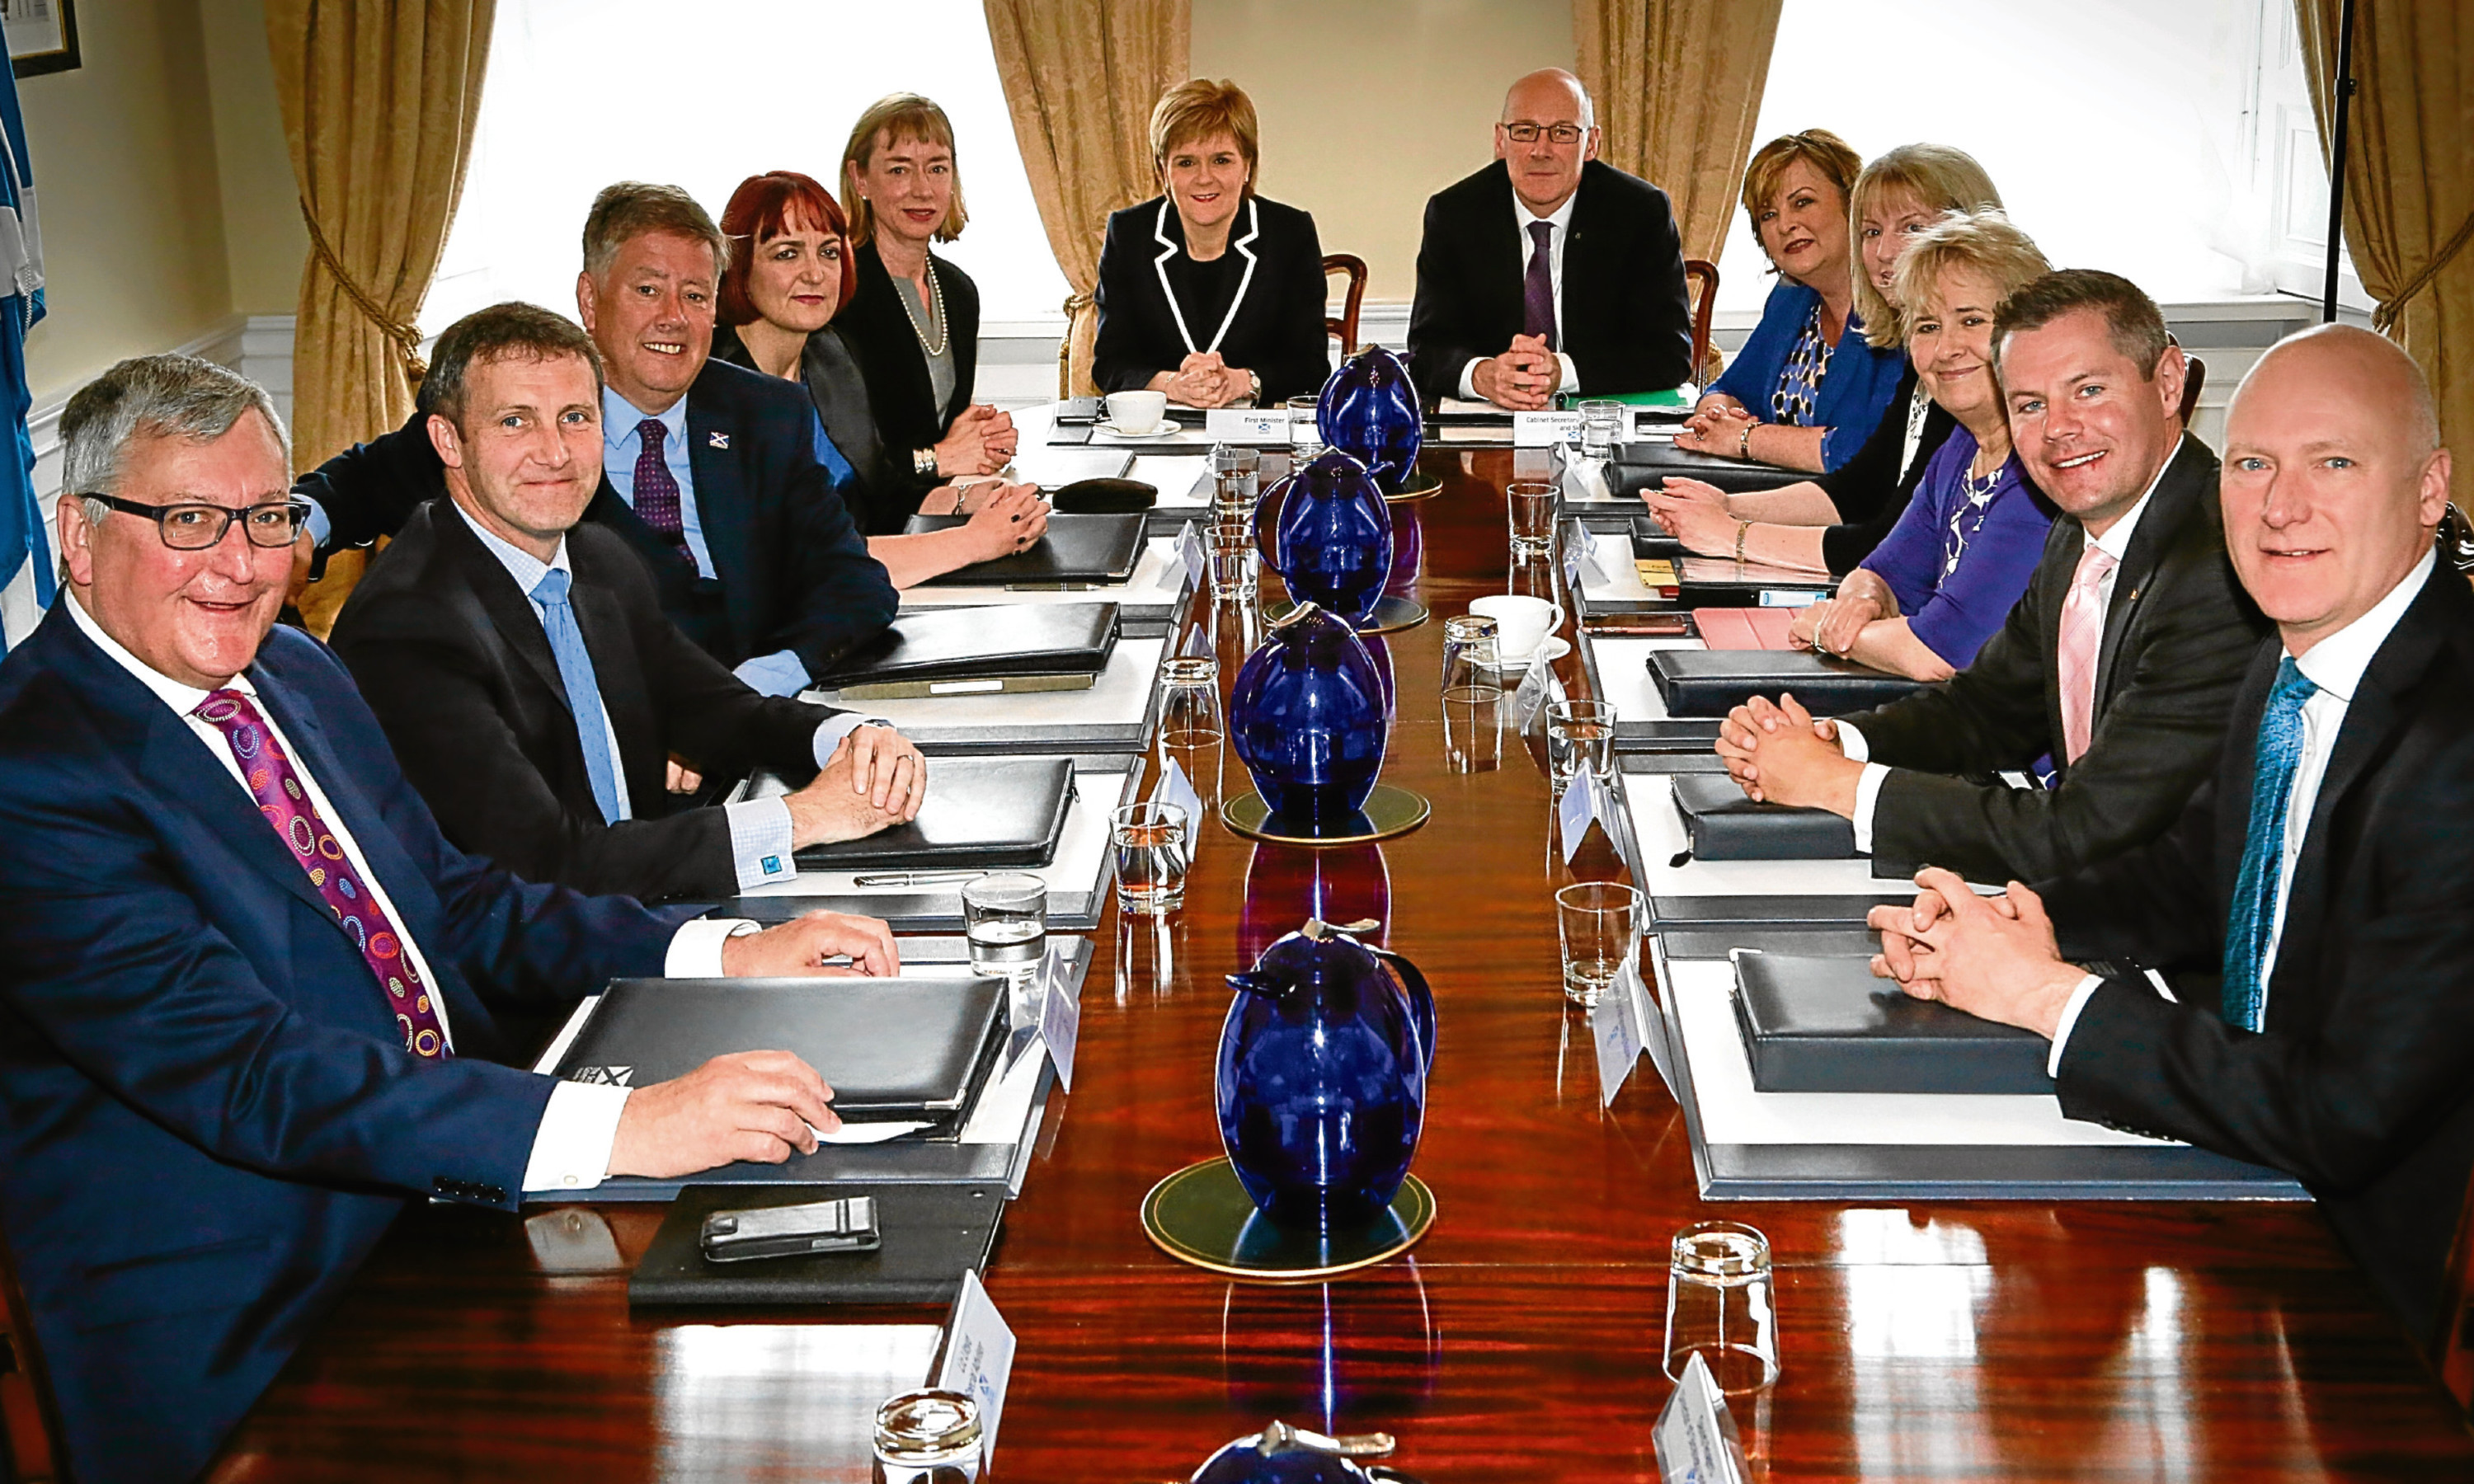 The Scottish Cabinet meets up. Alex is worried that power in the SNP lies only with a chosen few.